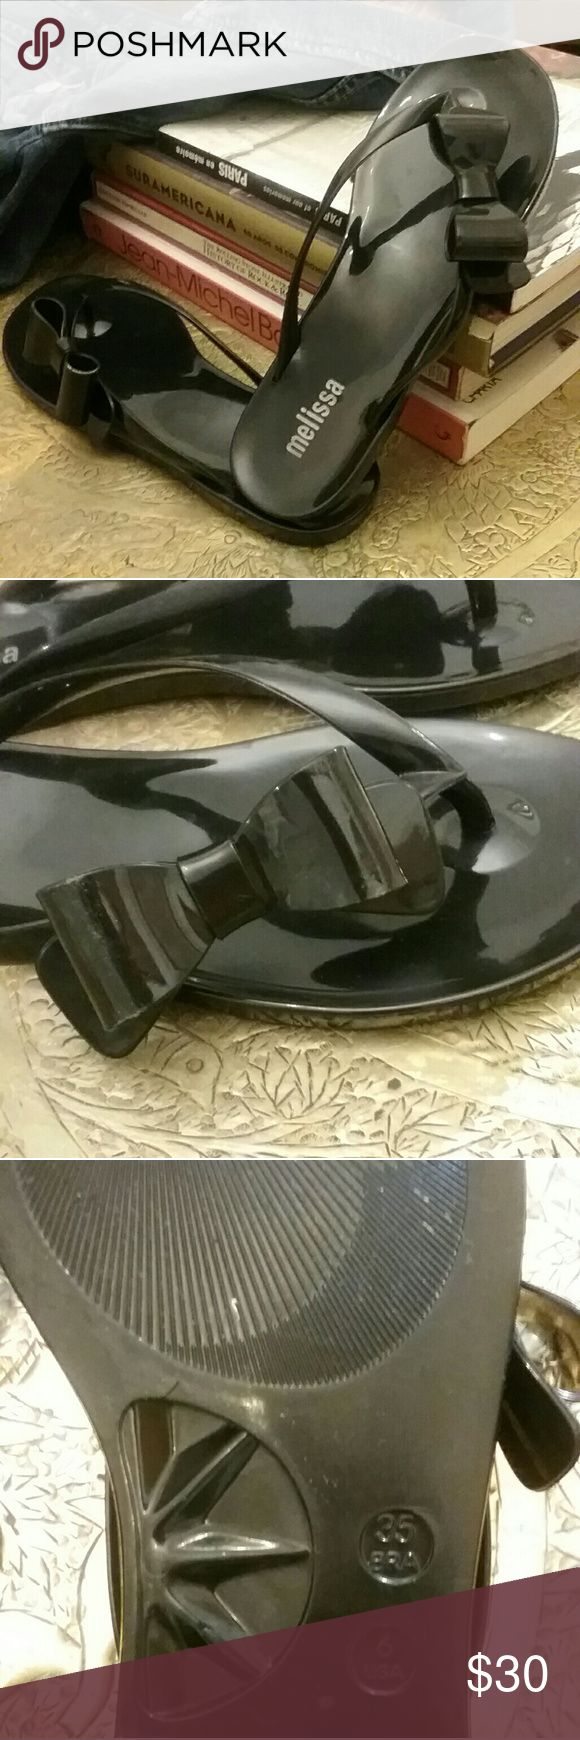 Original Melissa black jelly sandals w bow sz 6 Original Melissa black jelly sandals with a bow on the sides size 6, made in Brazil. Only worn a few times, they are in excellent condition, easy to clean! Melissa Shoes Sandals